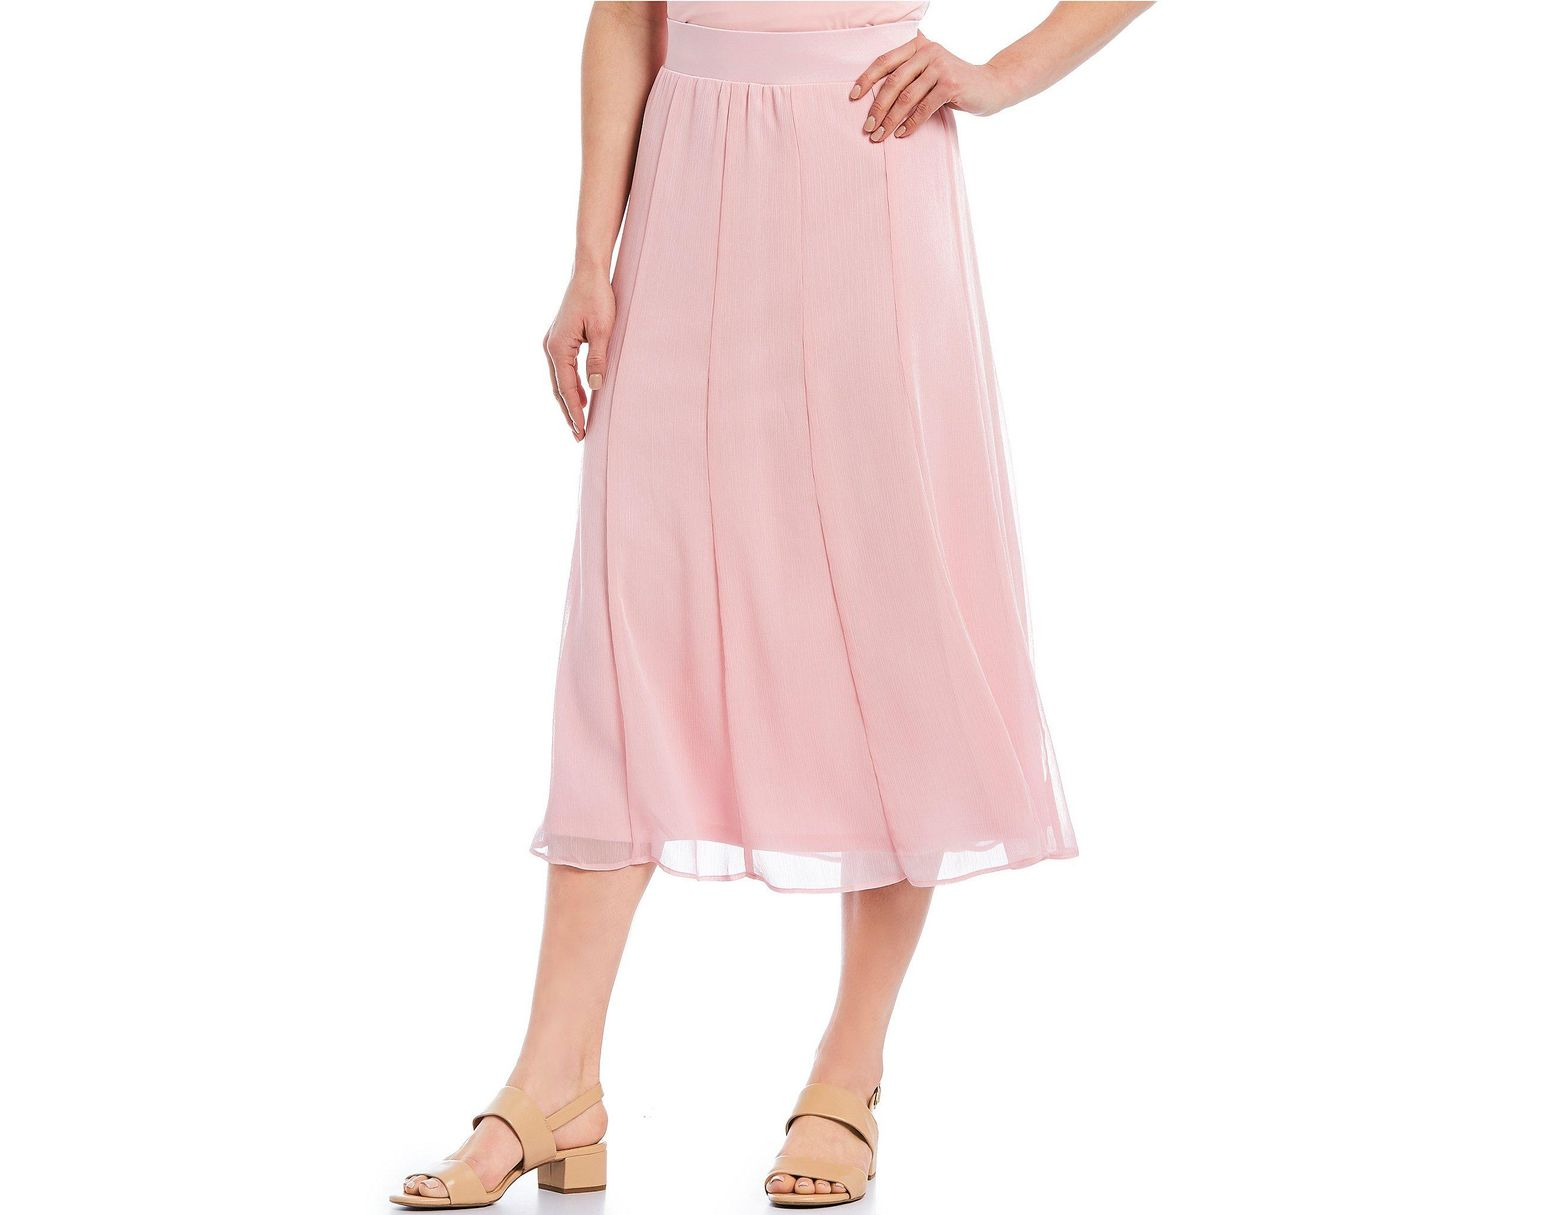 Pull On Pink Skirt RdPetite Lyst Size Ruby In Long Chiffon RjqAL34c5S